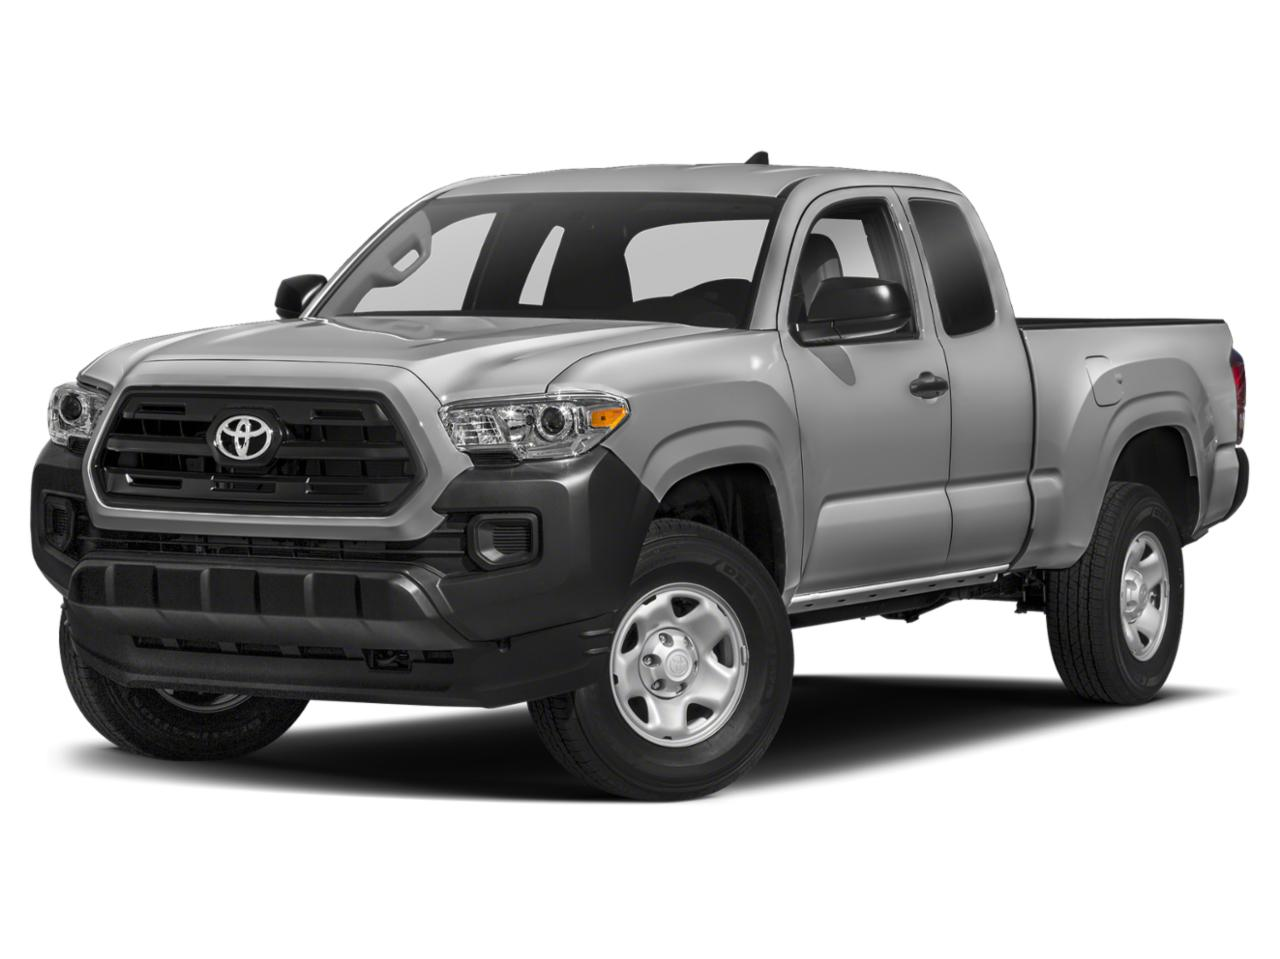 2018 Toyota Tacoma Vehicle Photo in Prince Frederick, MD 20678